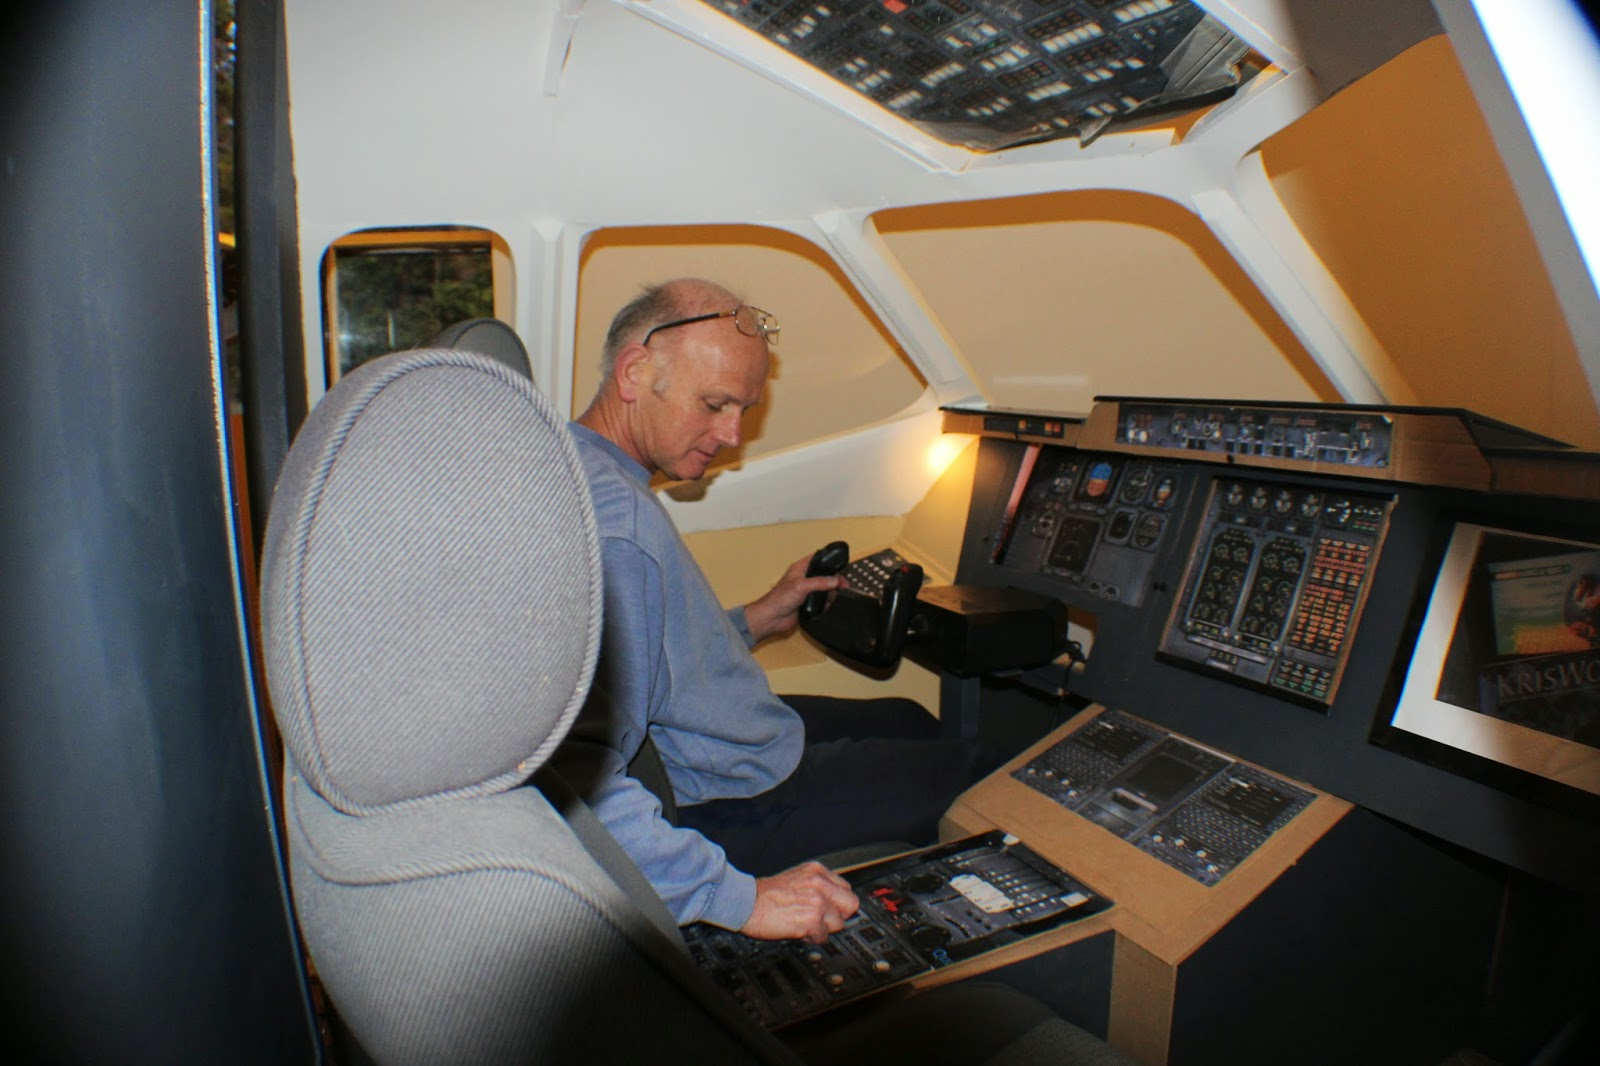 BAE 146 - Home Built Flight Sim: Central Pedestal